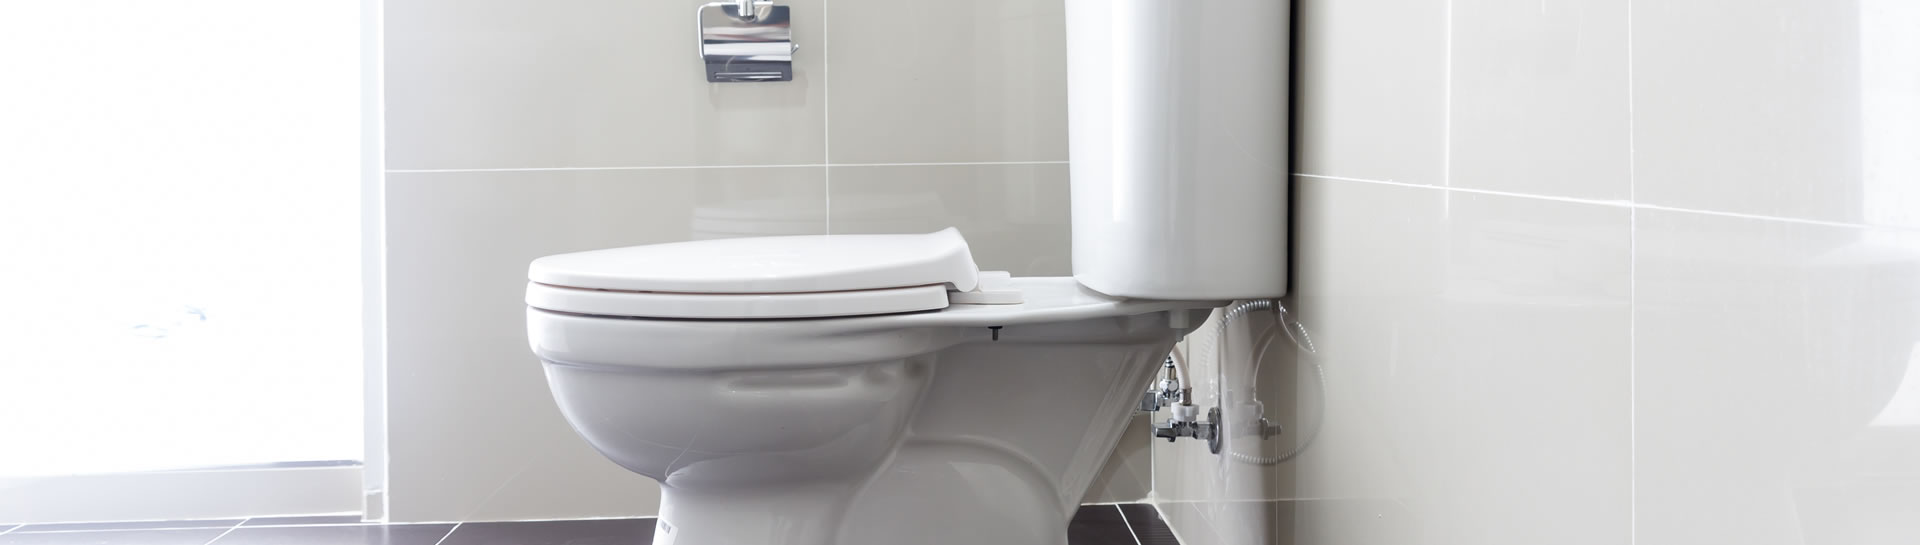 Toilet Fixtures in San Jose, CA | Mike Counsil Plumbing and Rooter